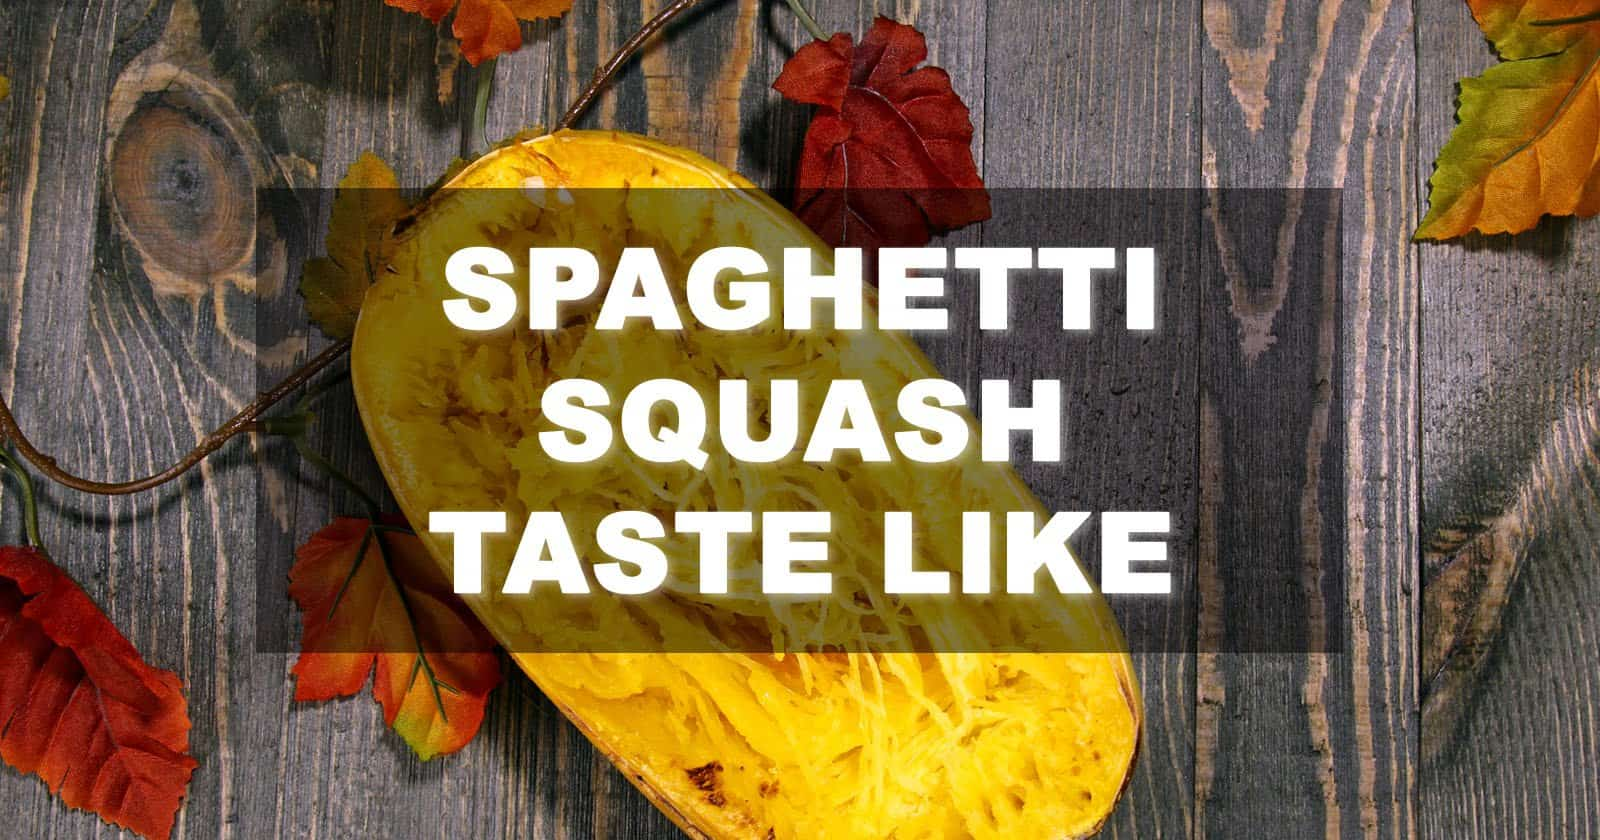 what does spaghetti squash taste like